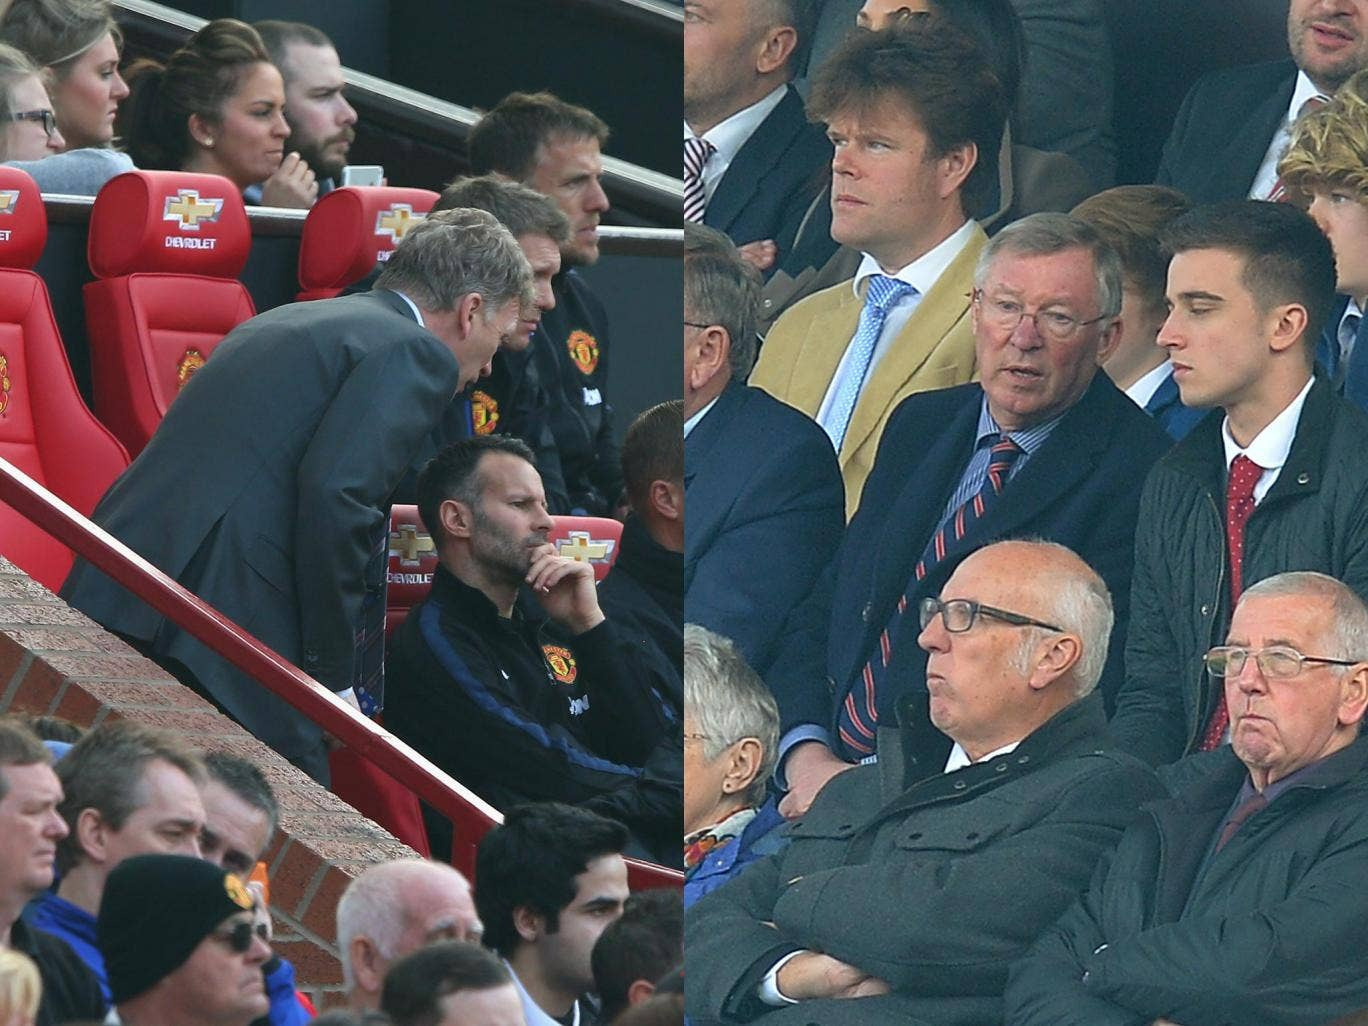 David Moyes will have a direct line built into his chair at Old Trafford to maintain communication from Sir Alex Ferguson